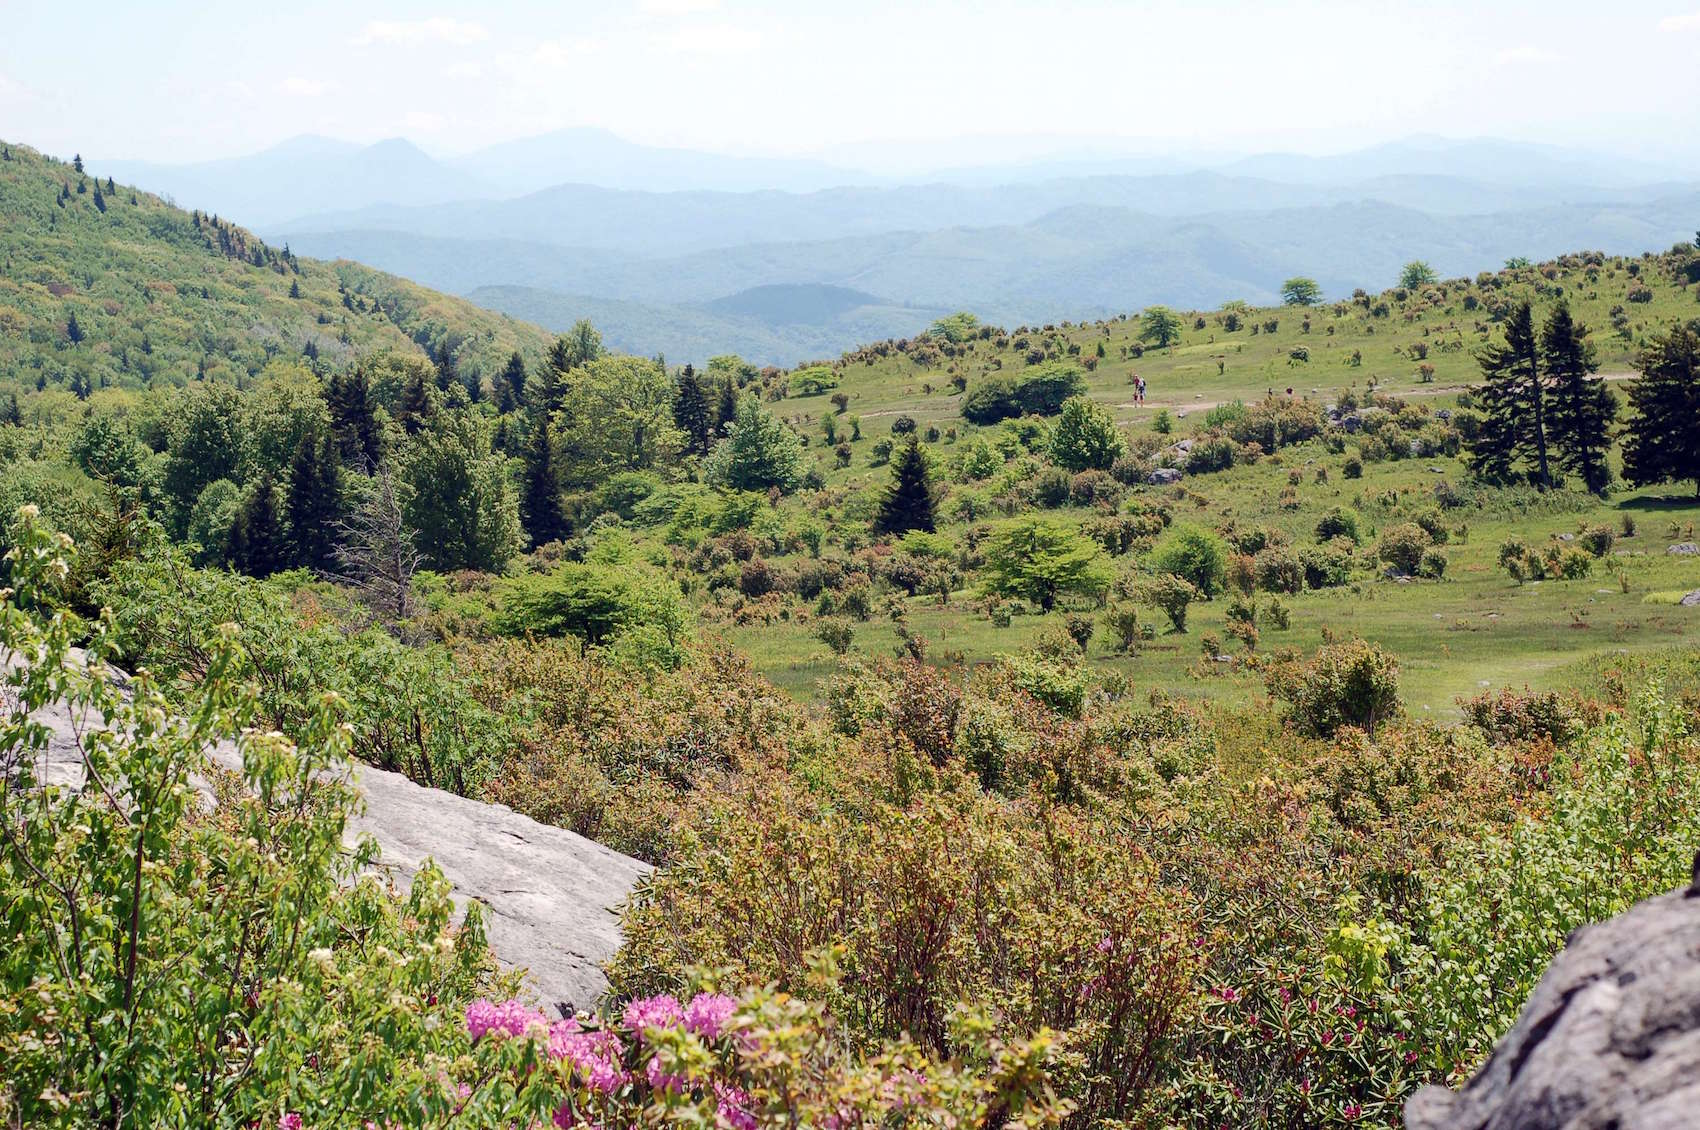 View from Wilburn Ridge at Grayson Highlands State Park